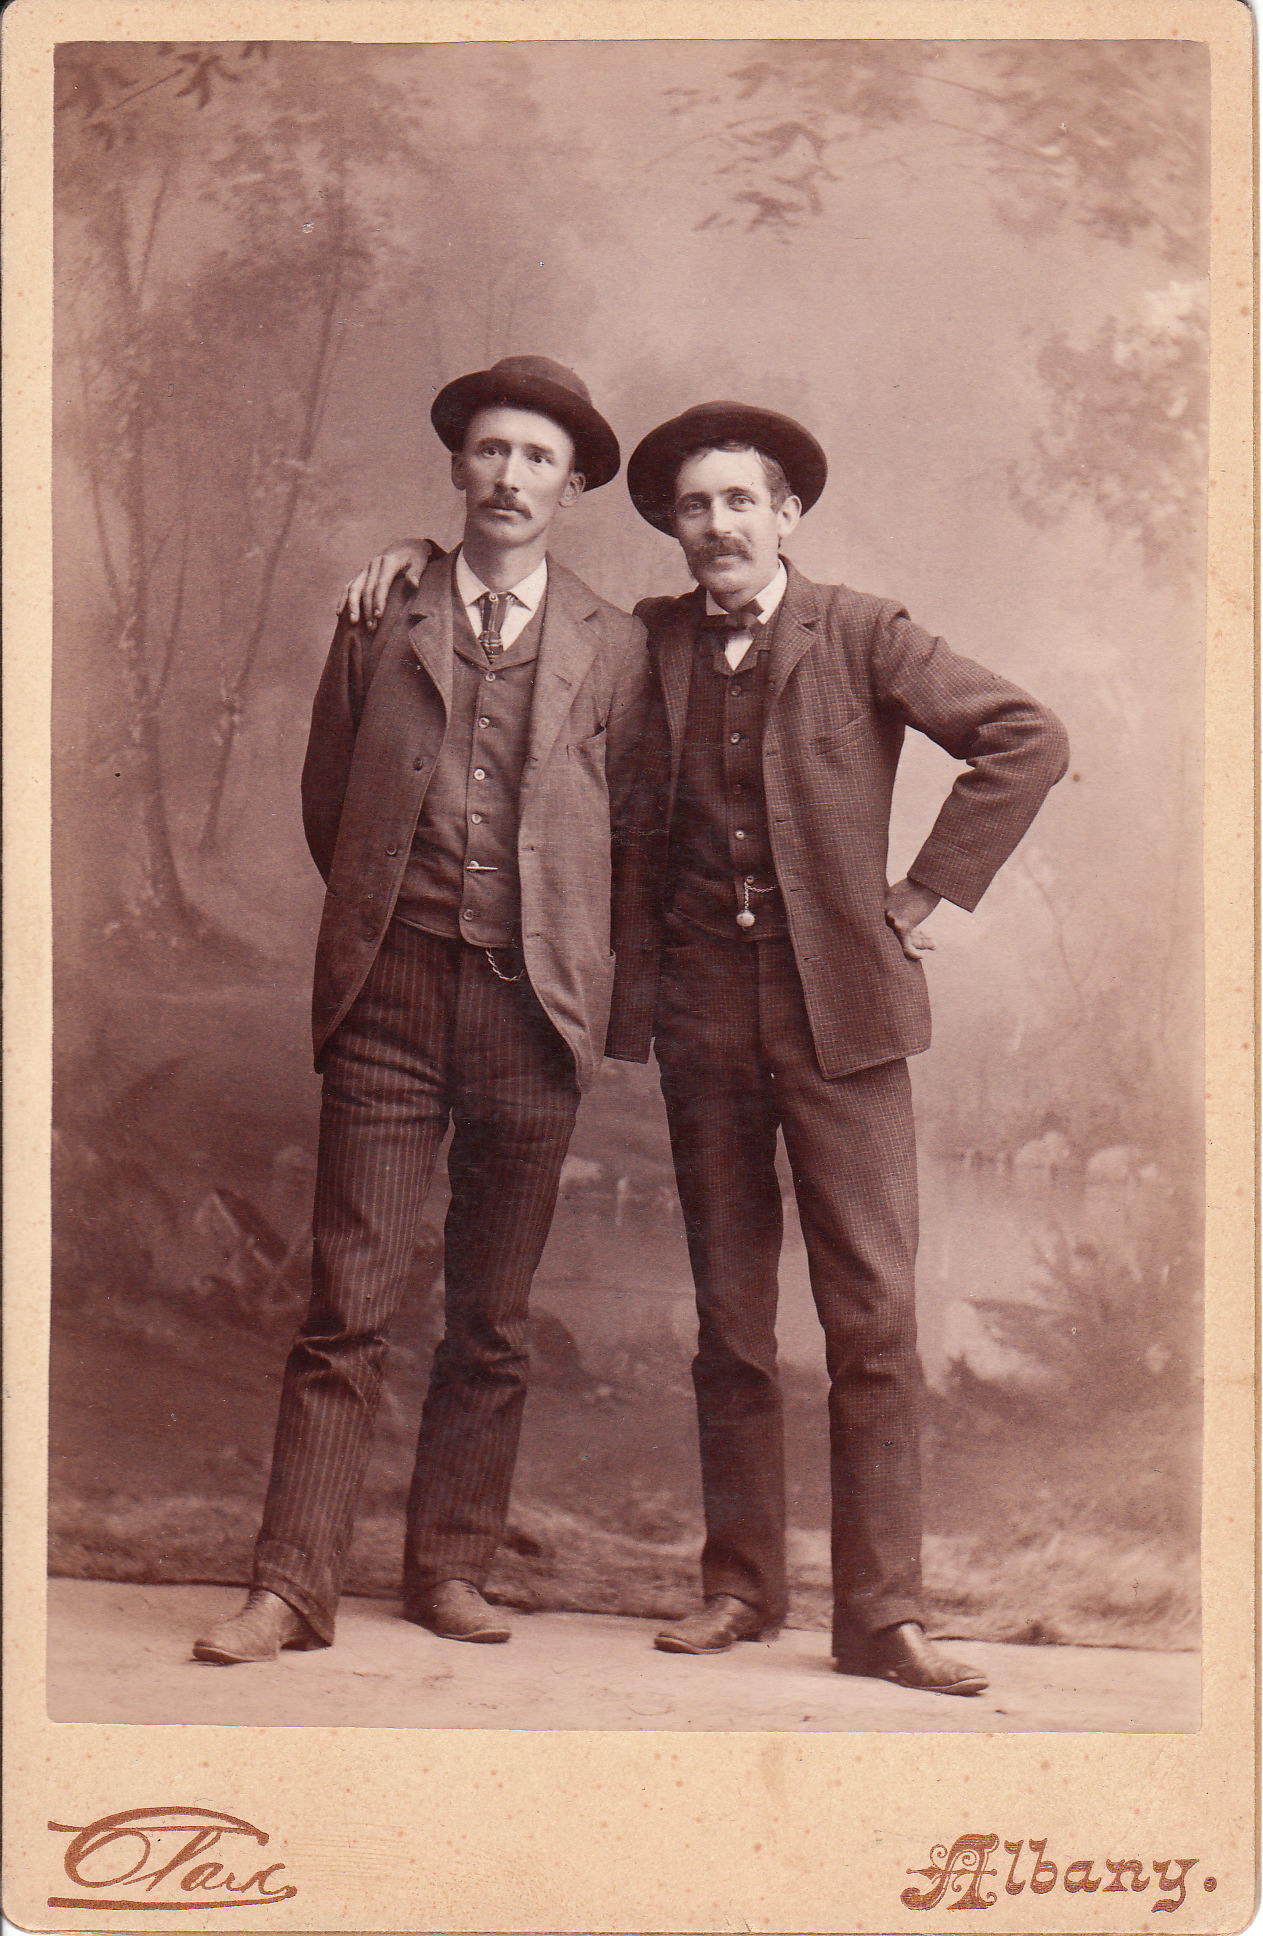 Two men pose together at the Clark studio in Albany.